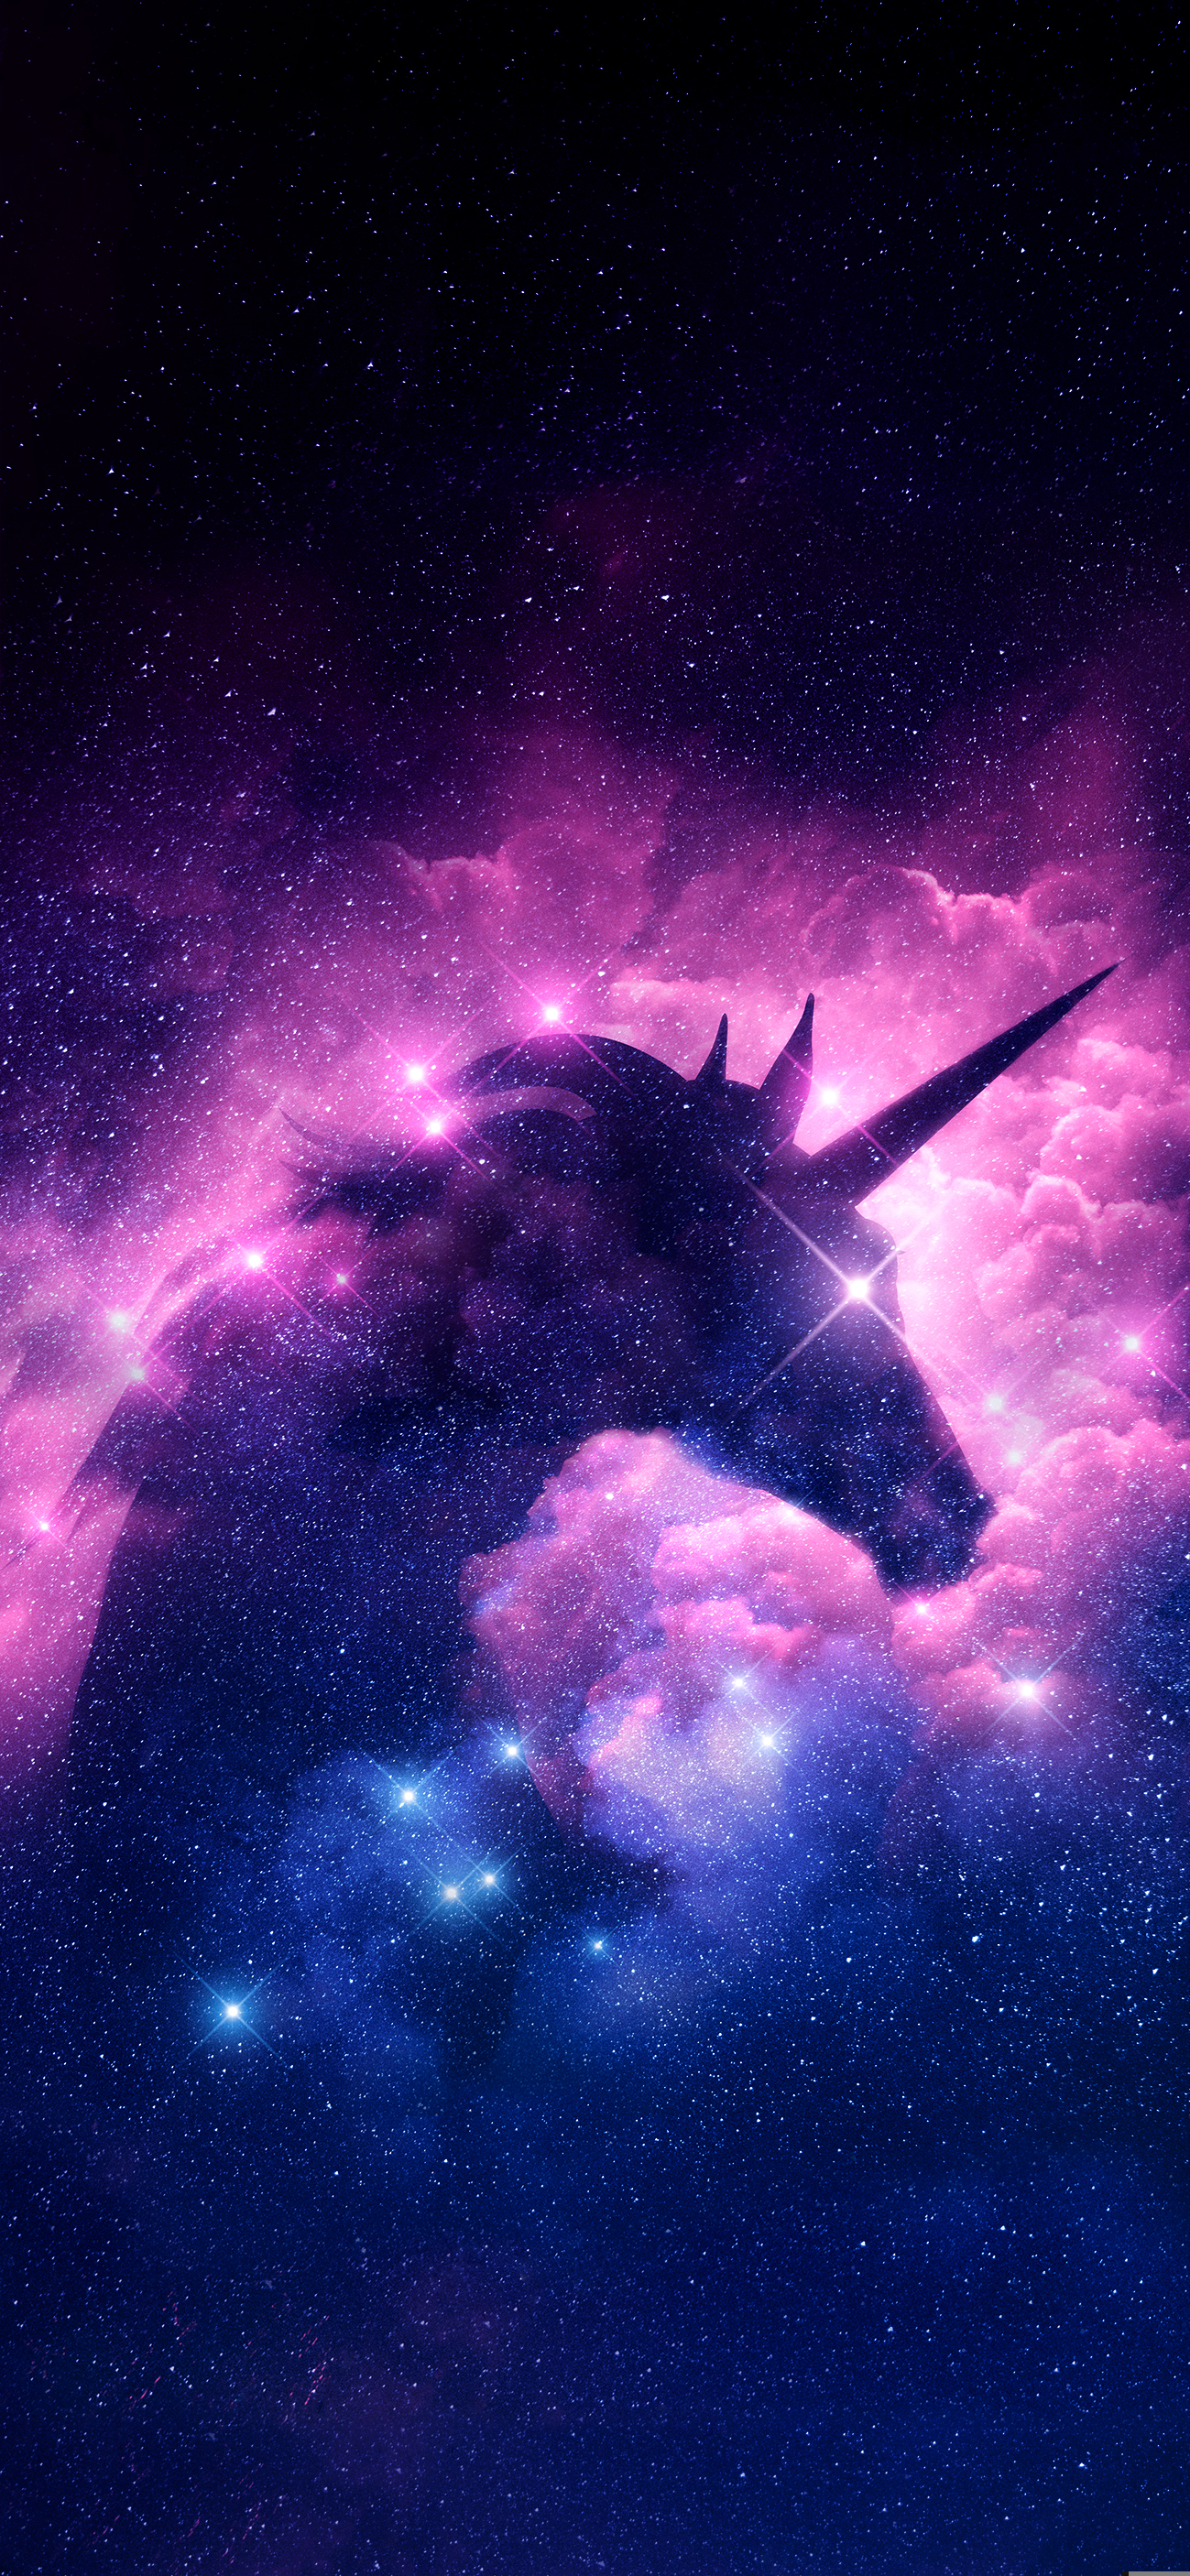 Art Wallpaper Iphone Unicorn In 2019 Iphone Wallpaper